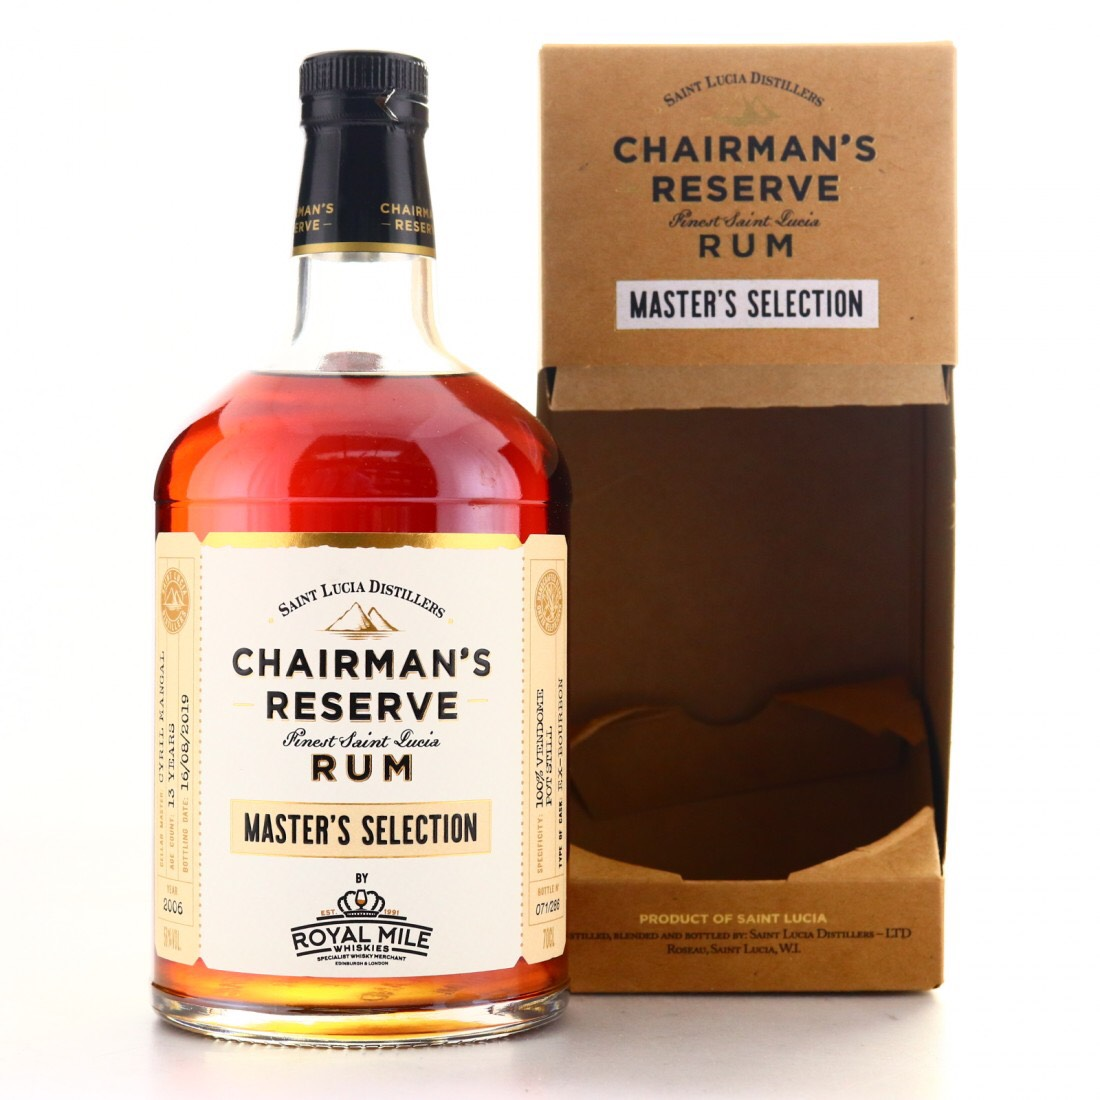 Bottle image of Chairman's Reserve Master's Selection (Royal Mile Whiskies)